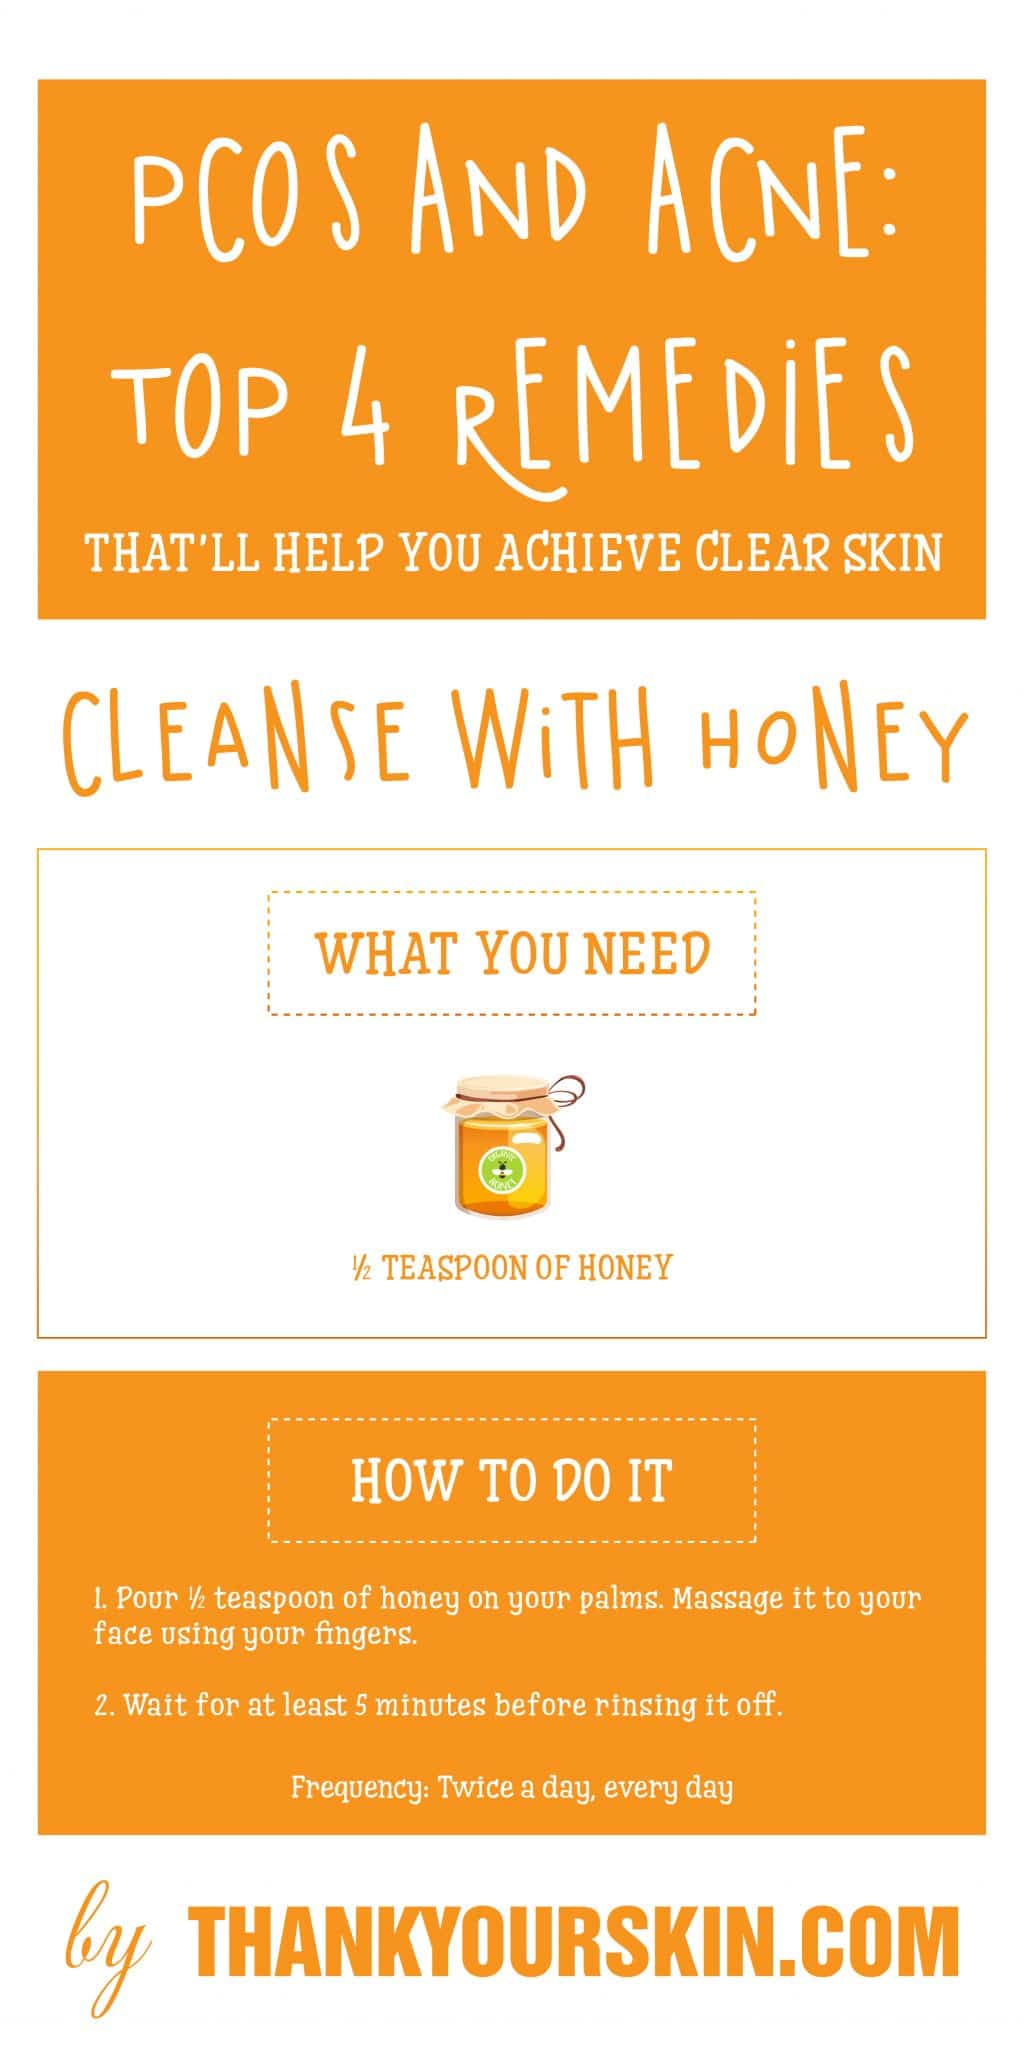 PCOS And Acne: Top 4 Remedies That'll Help You Achieve Clear